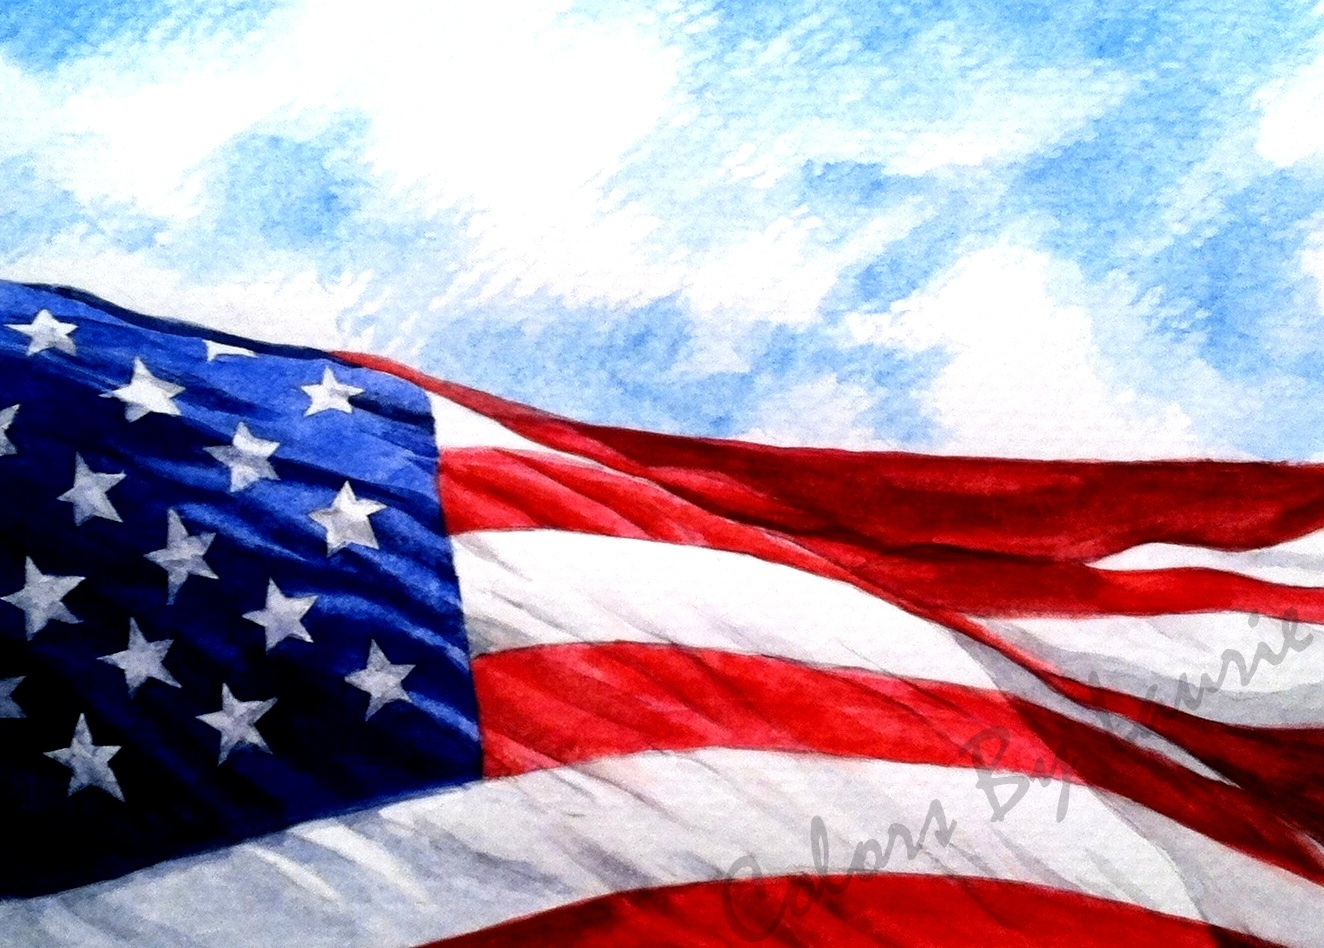 OLD GLORY - Three cheers for the Red, White and Blue! - SIZE: 5 X 7